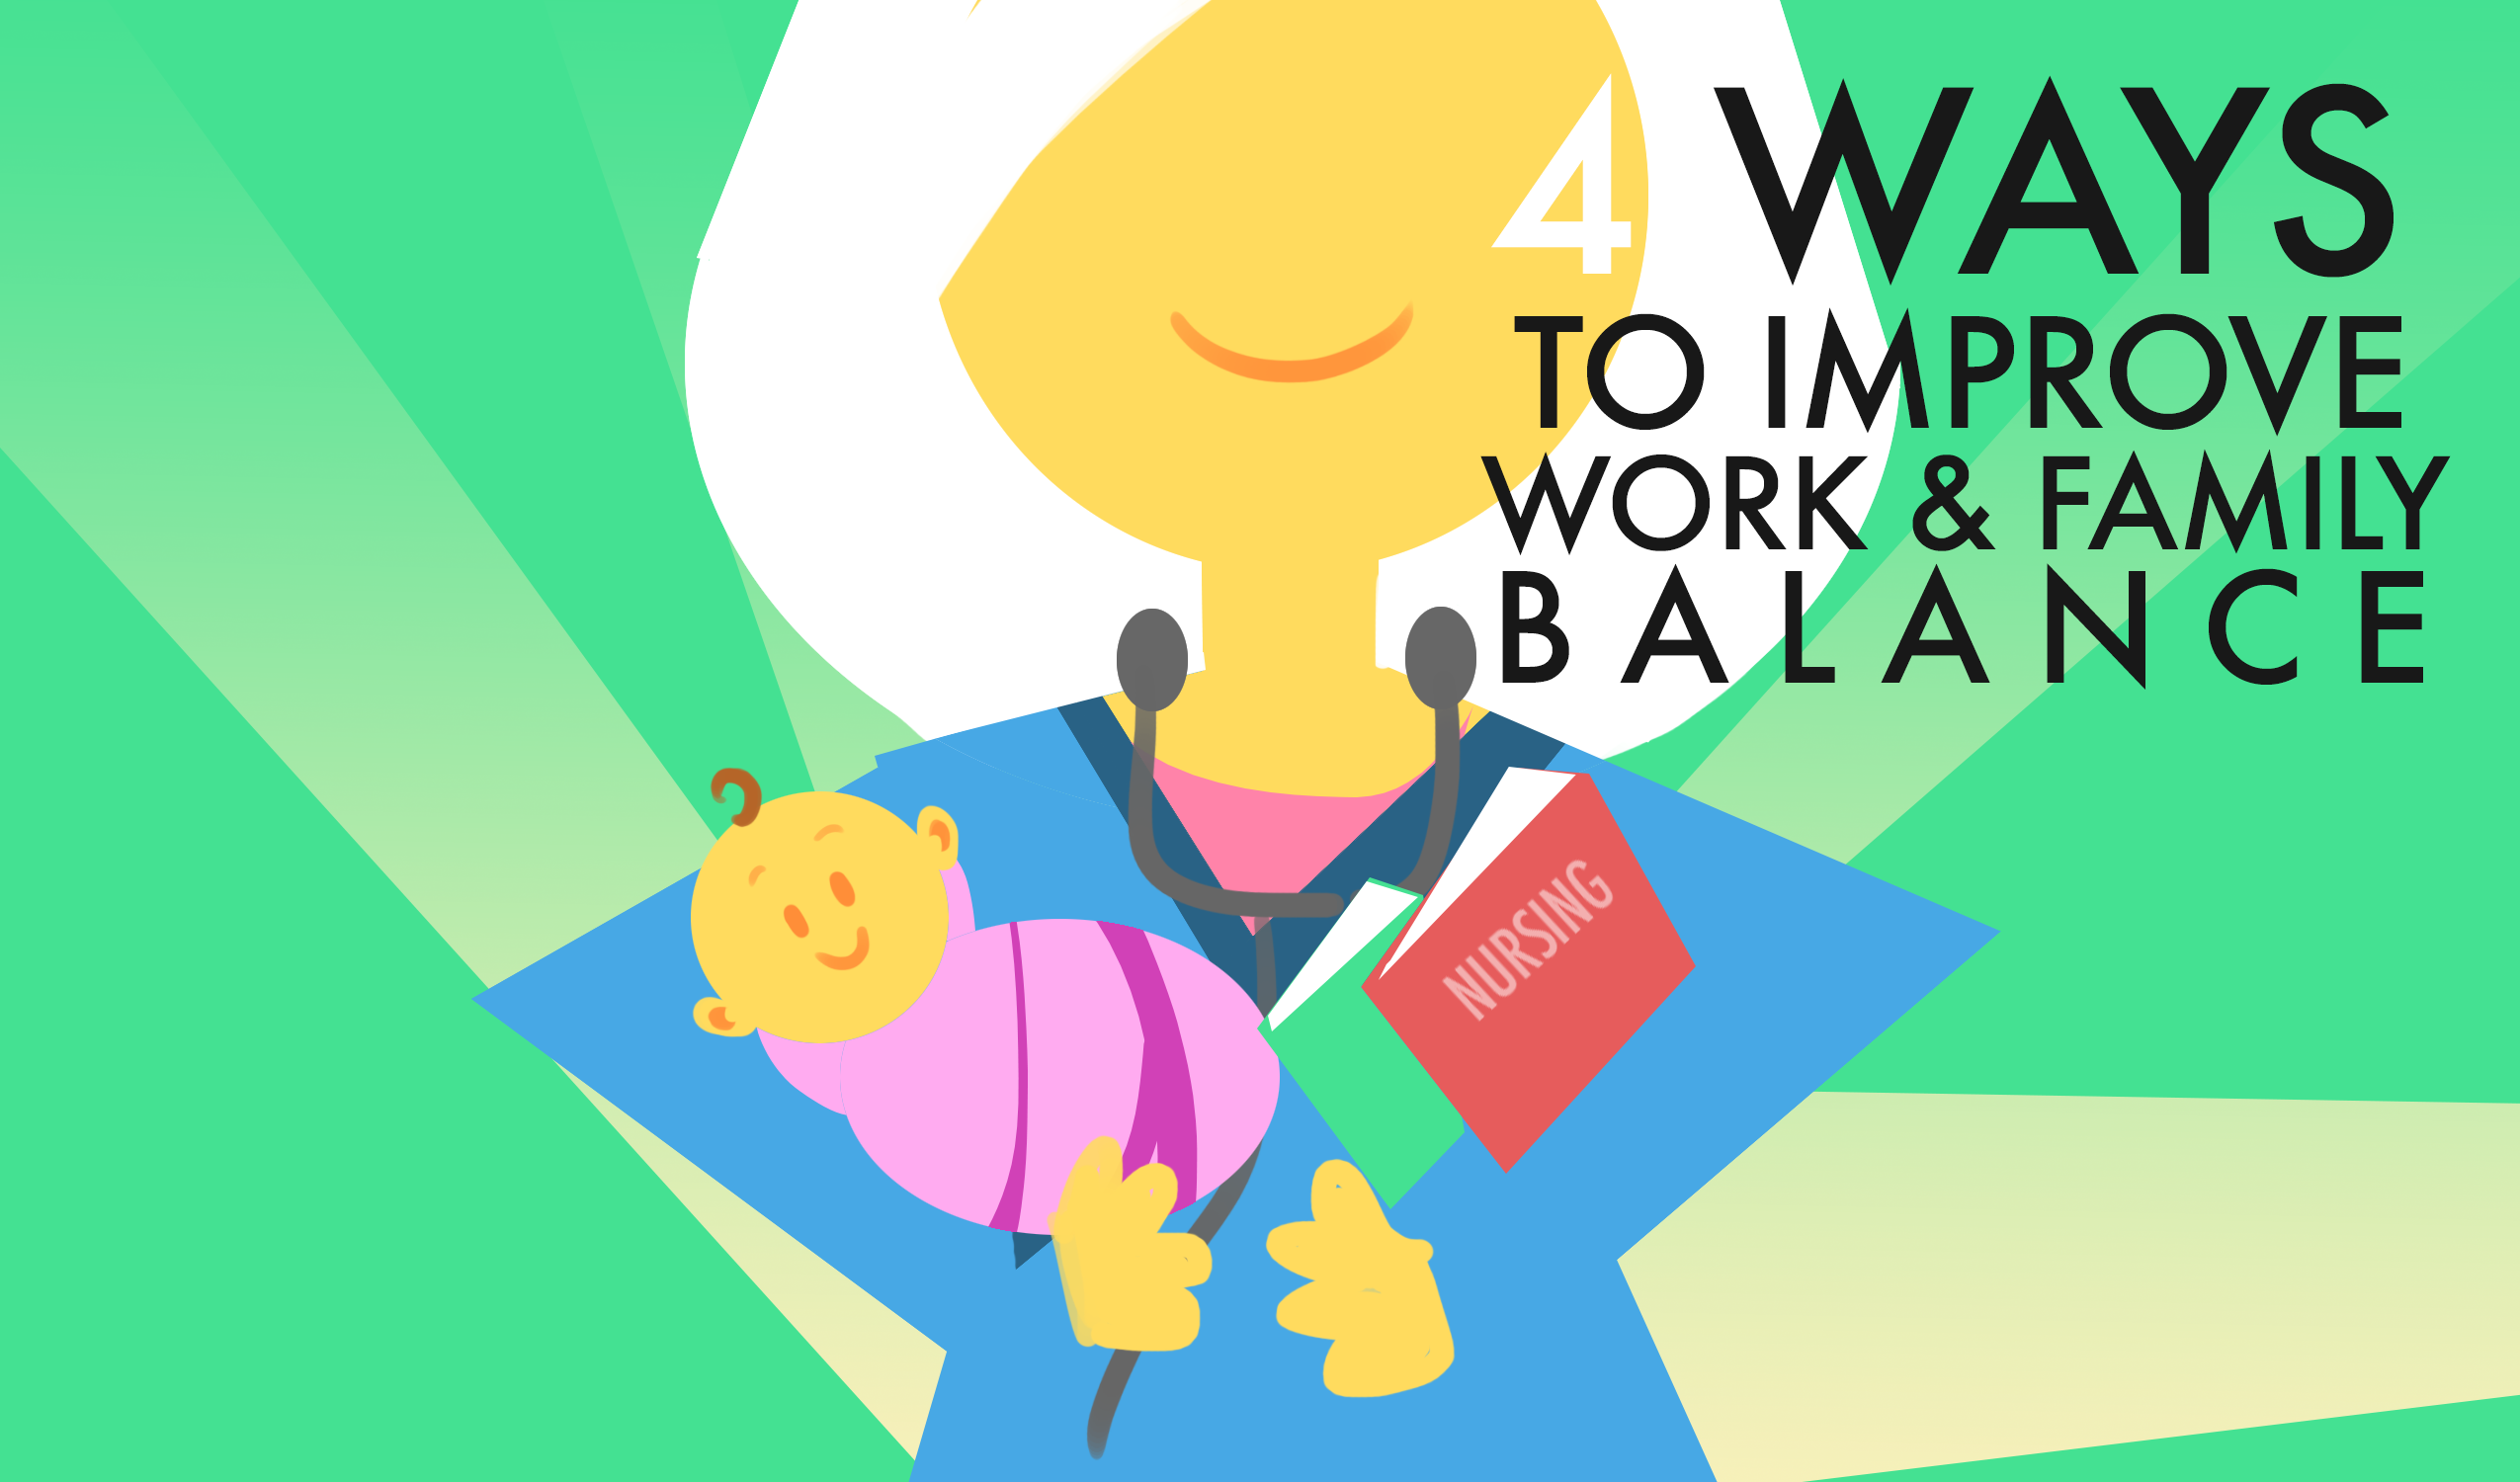 4 ways to improve work and family balance